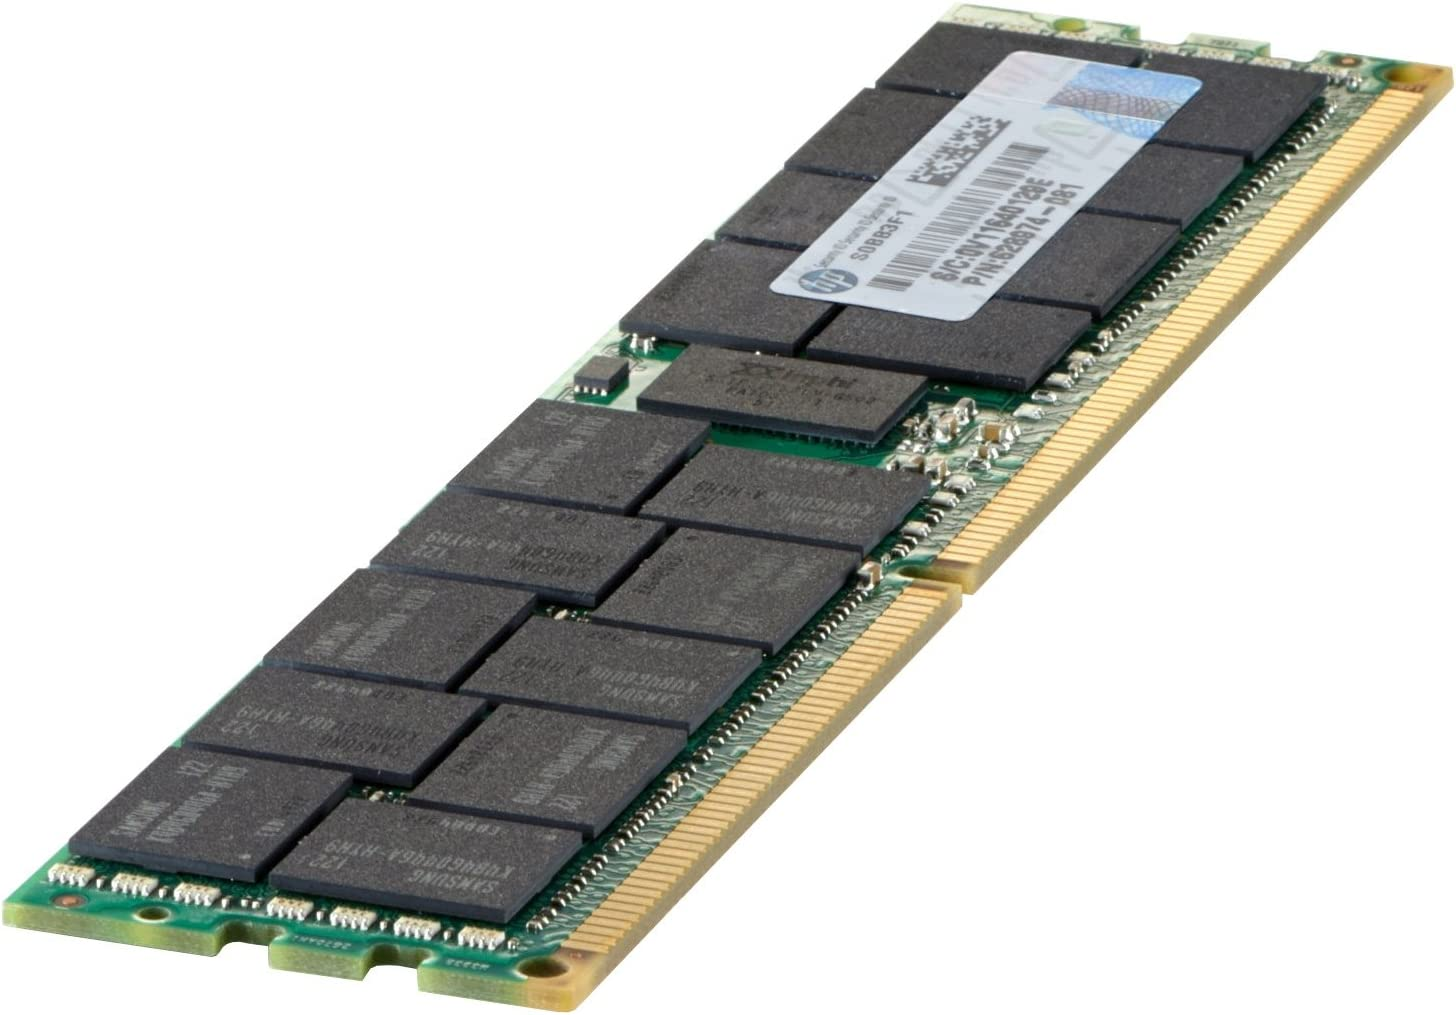 676333-B21 664691-001 AXIOM 8GB DDR3-1600 ECC RDIMM FOR HP # 647899-B21